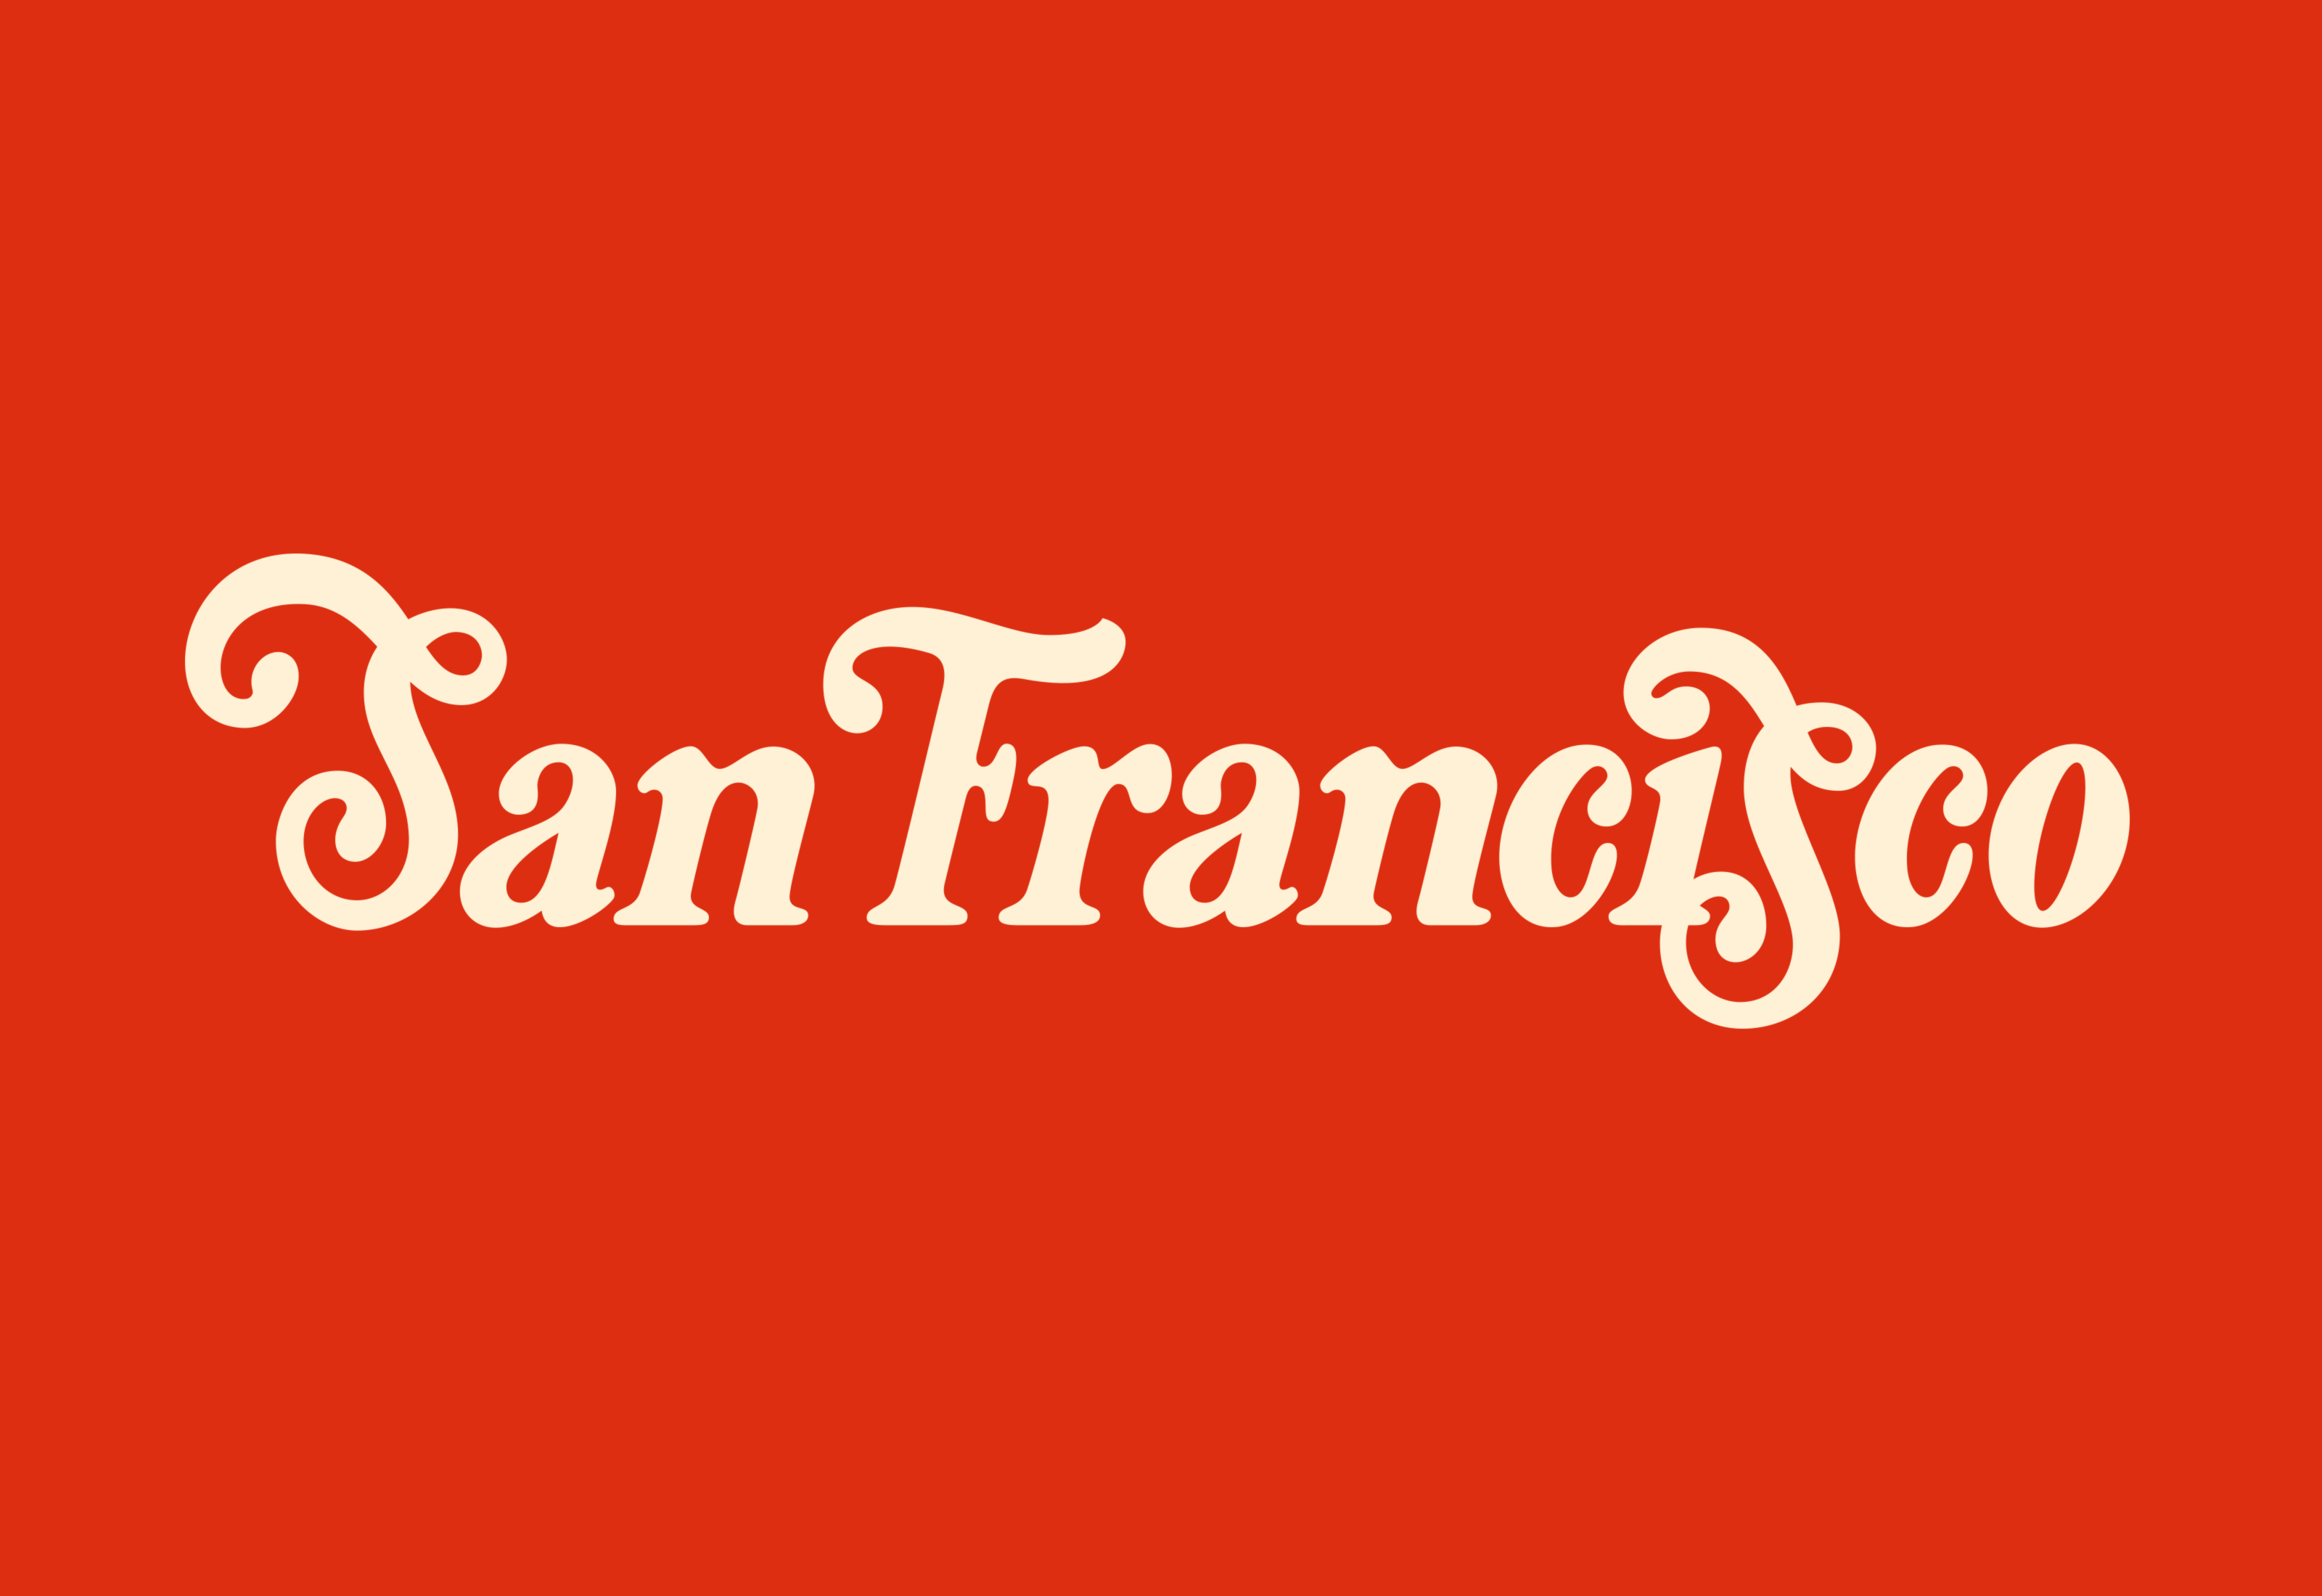 San Francisco Logotype by Mark Lundberg